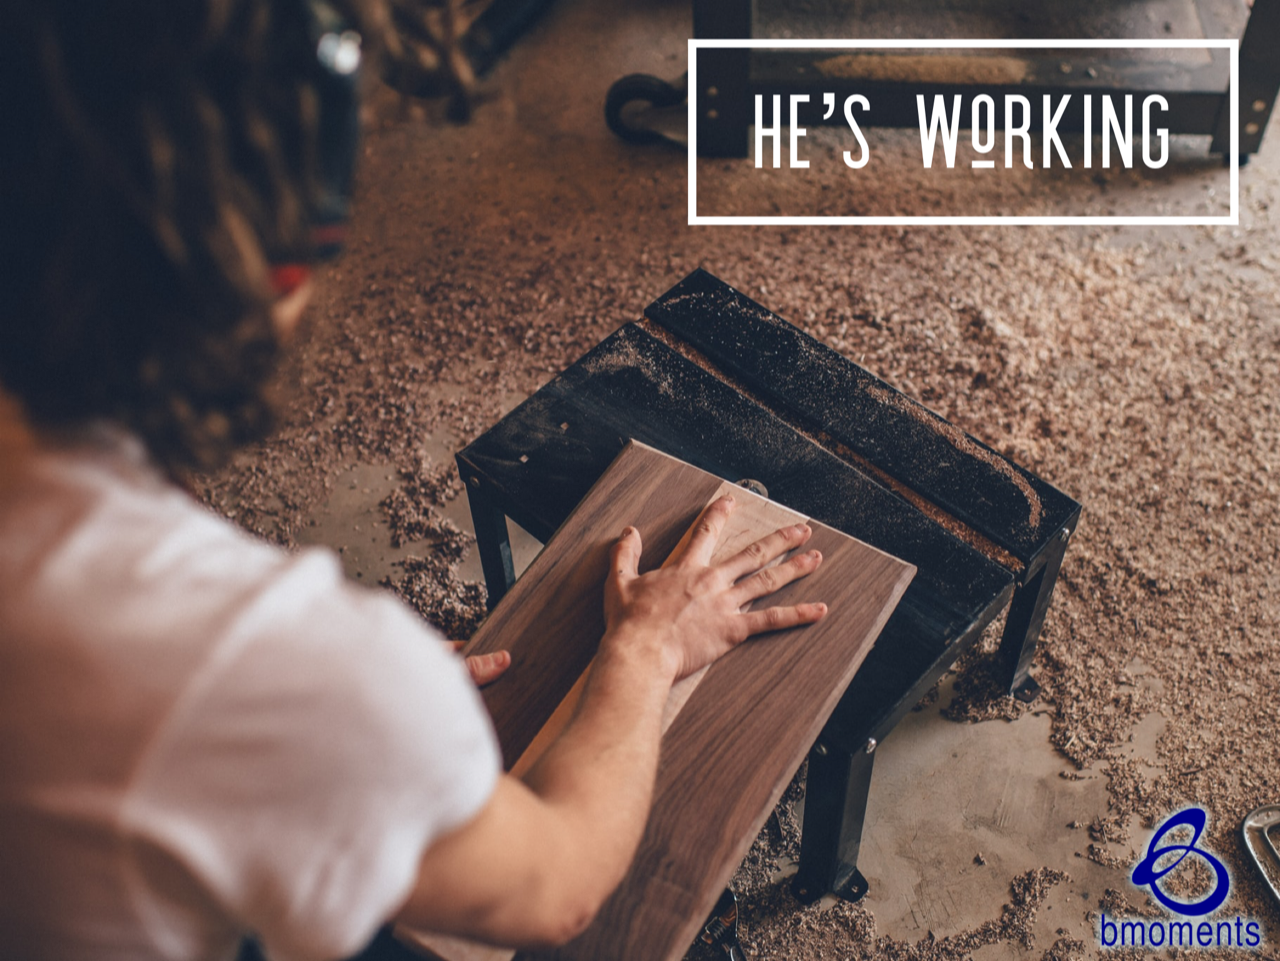 Despite Your Circumstances, God's Working in Your Life